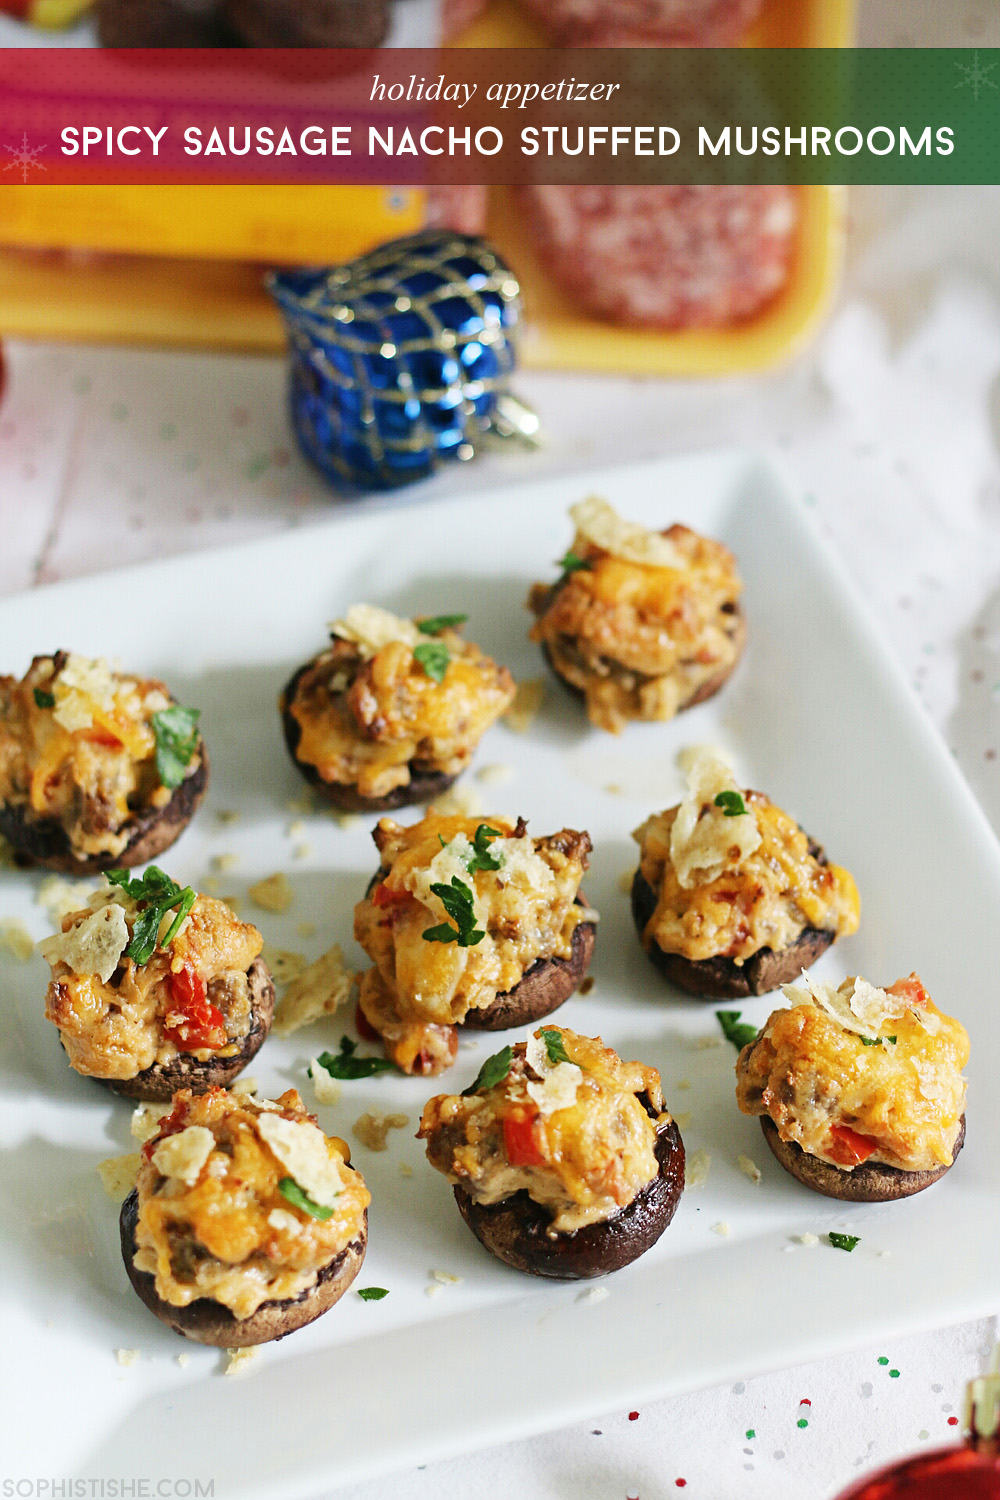 Spicy Sausage Nacho Stuffed Mushrooms via @sheenatatum and @chewsylovers